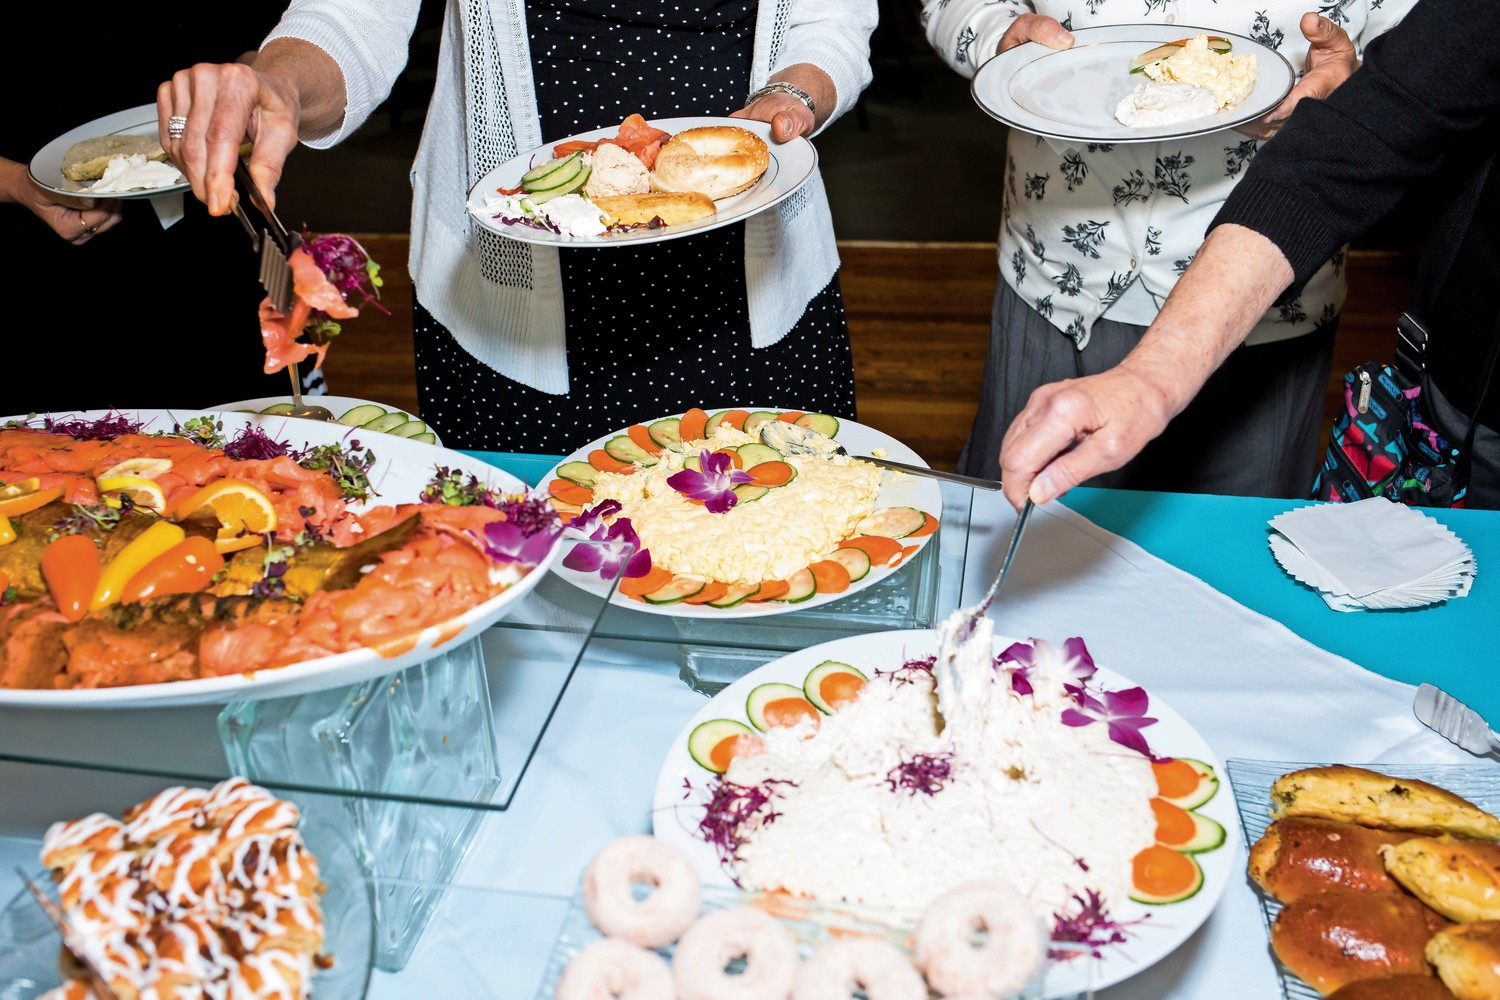 Attendees of the Bronx Jewish Community Center's annual 'Breakfast of Champions' fill their plates after an awards ceremony at the Riverdale Jewish Center.